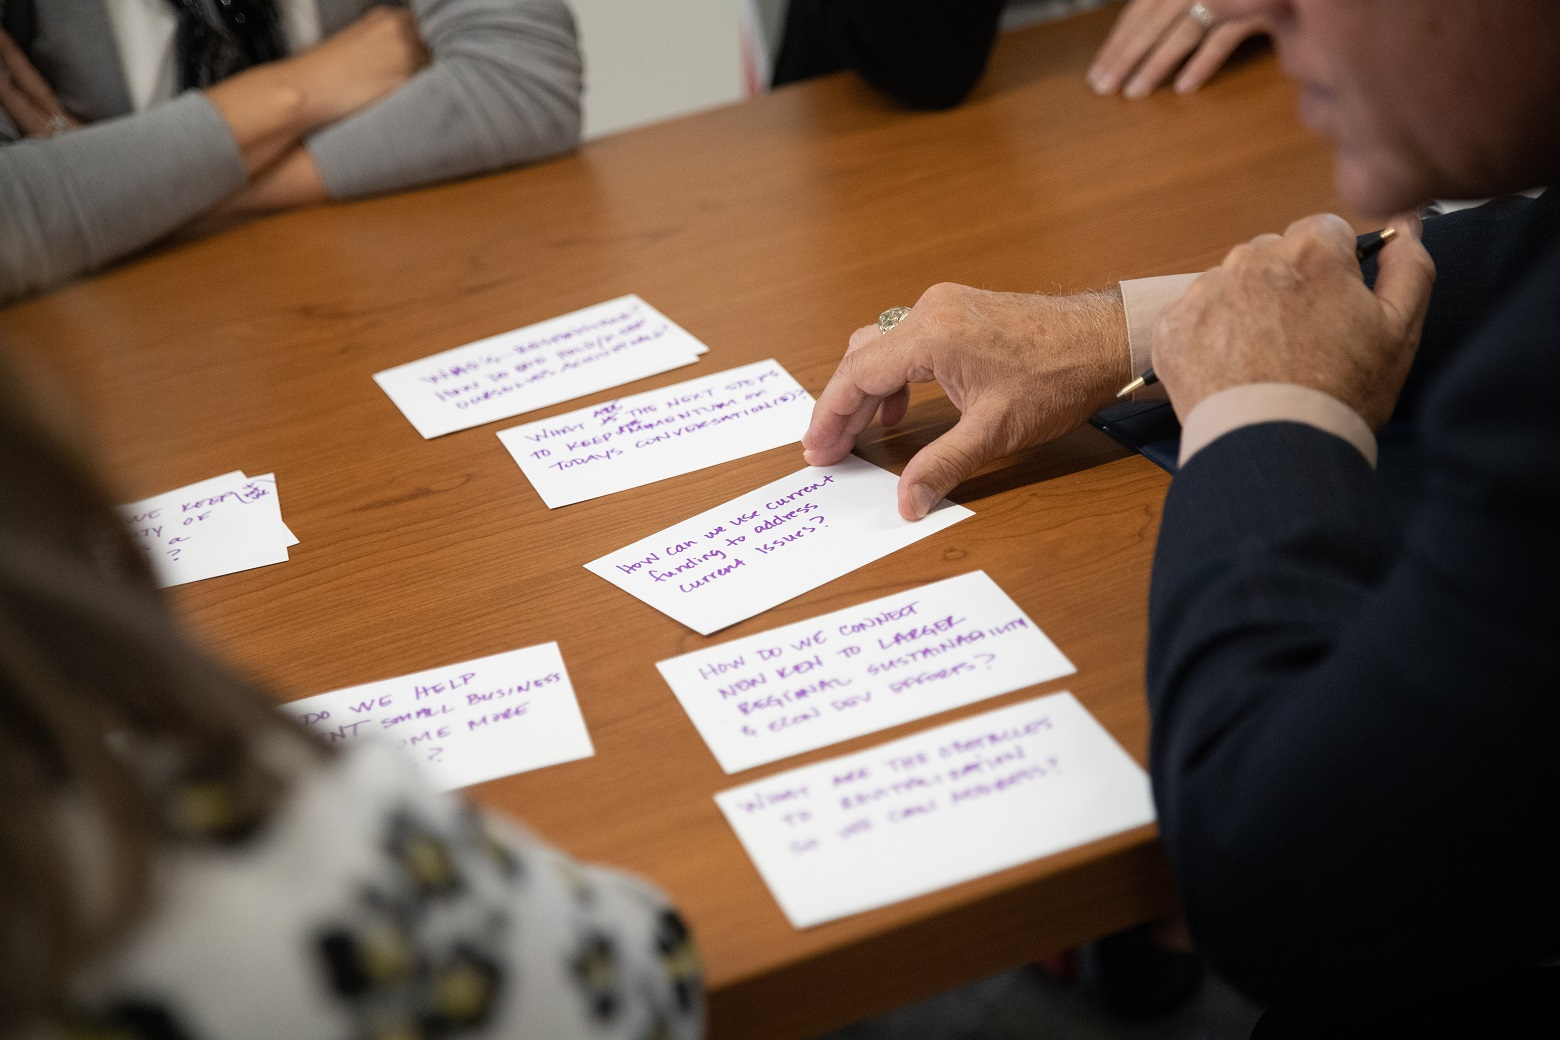 Index cards on table during reNew Kensington Community Workshop